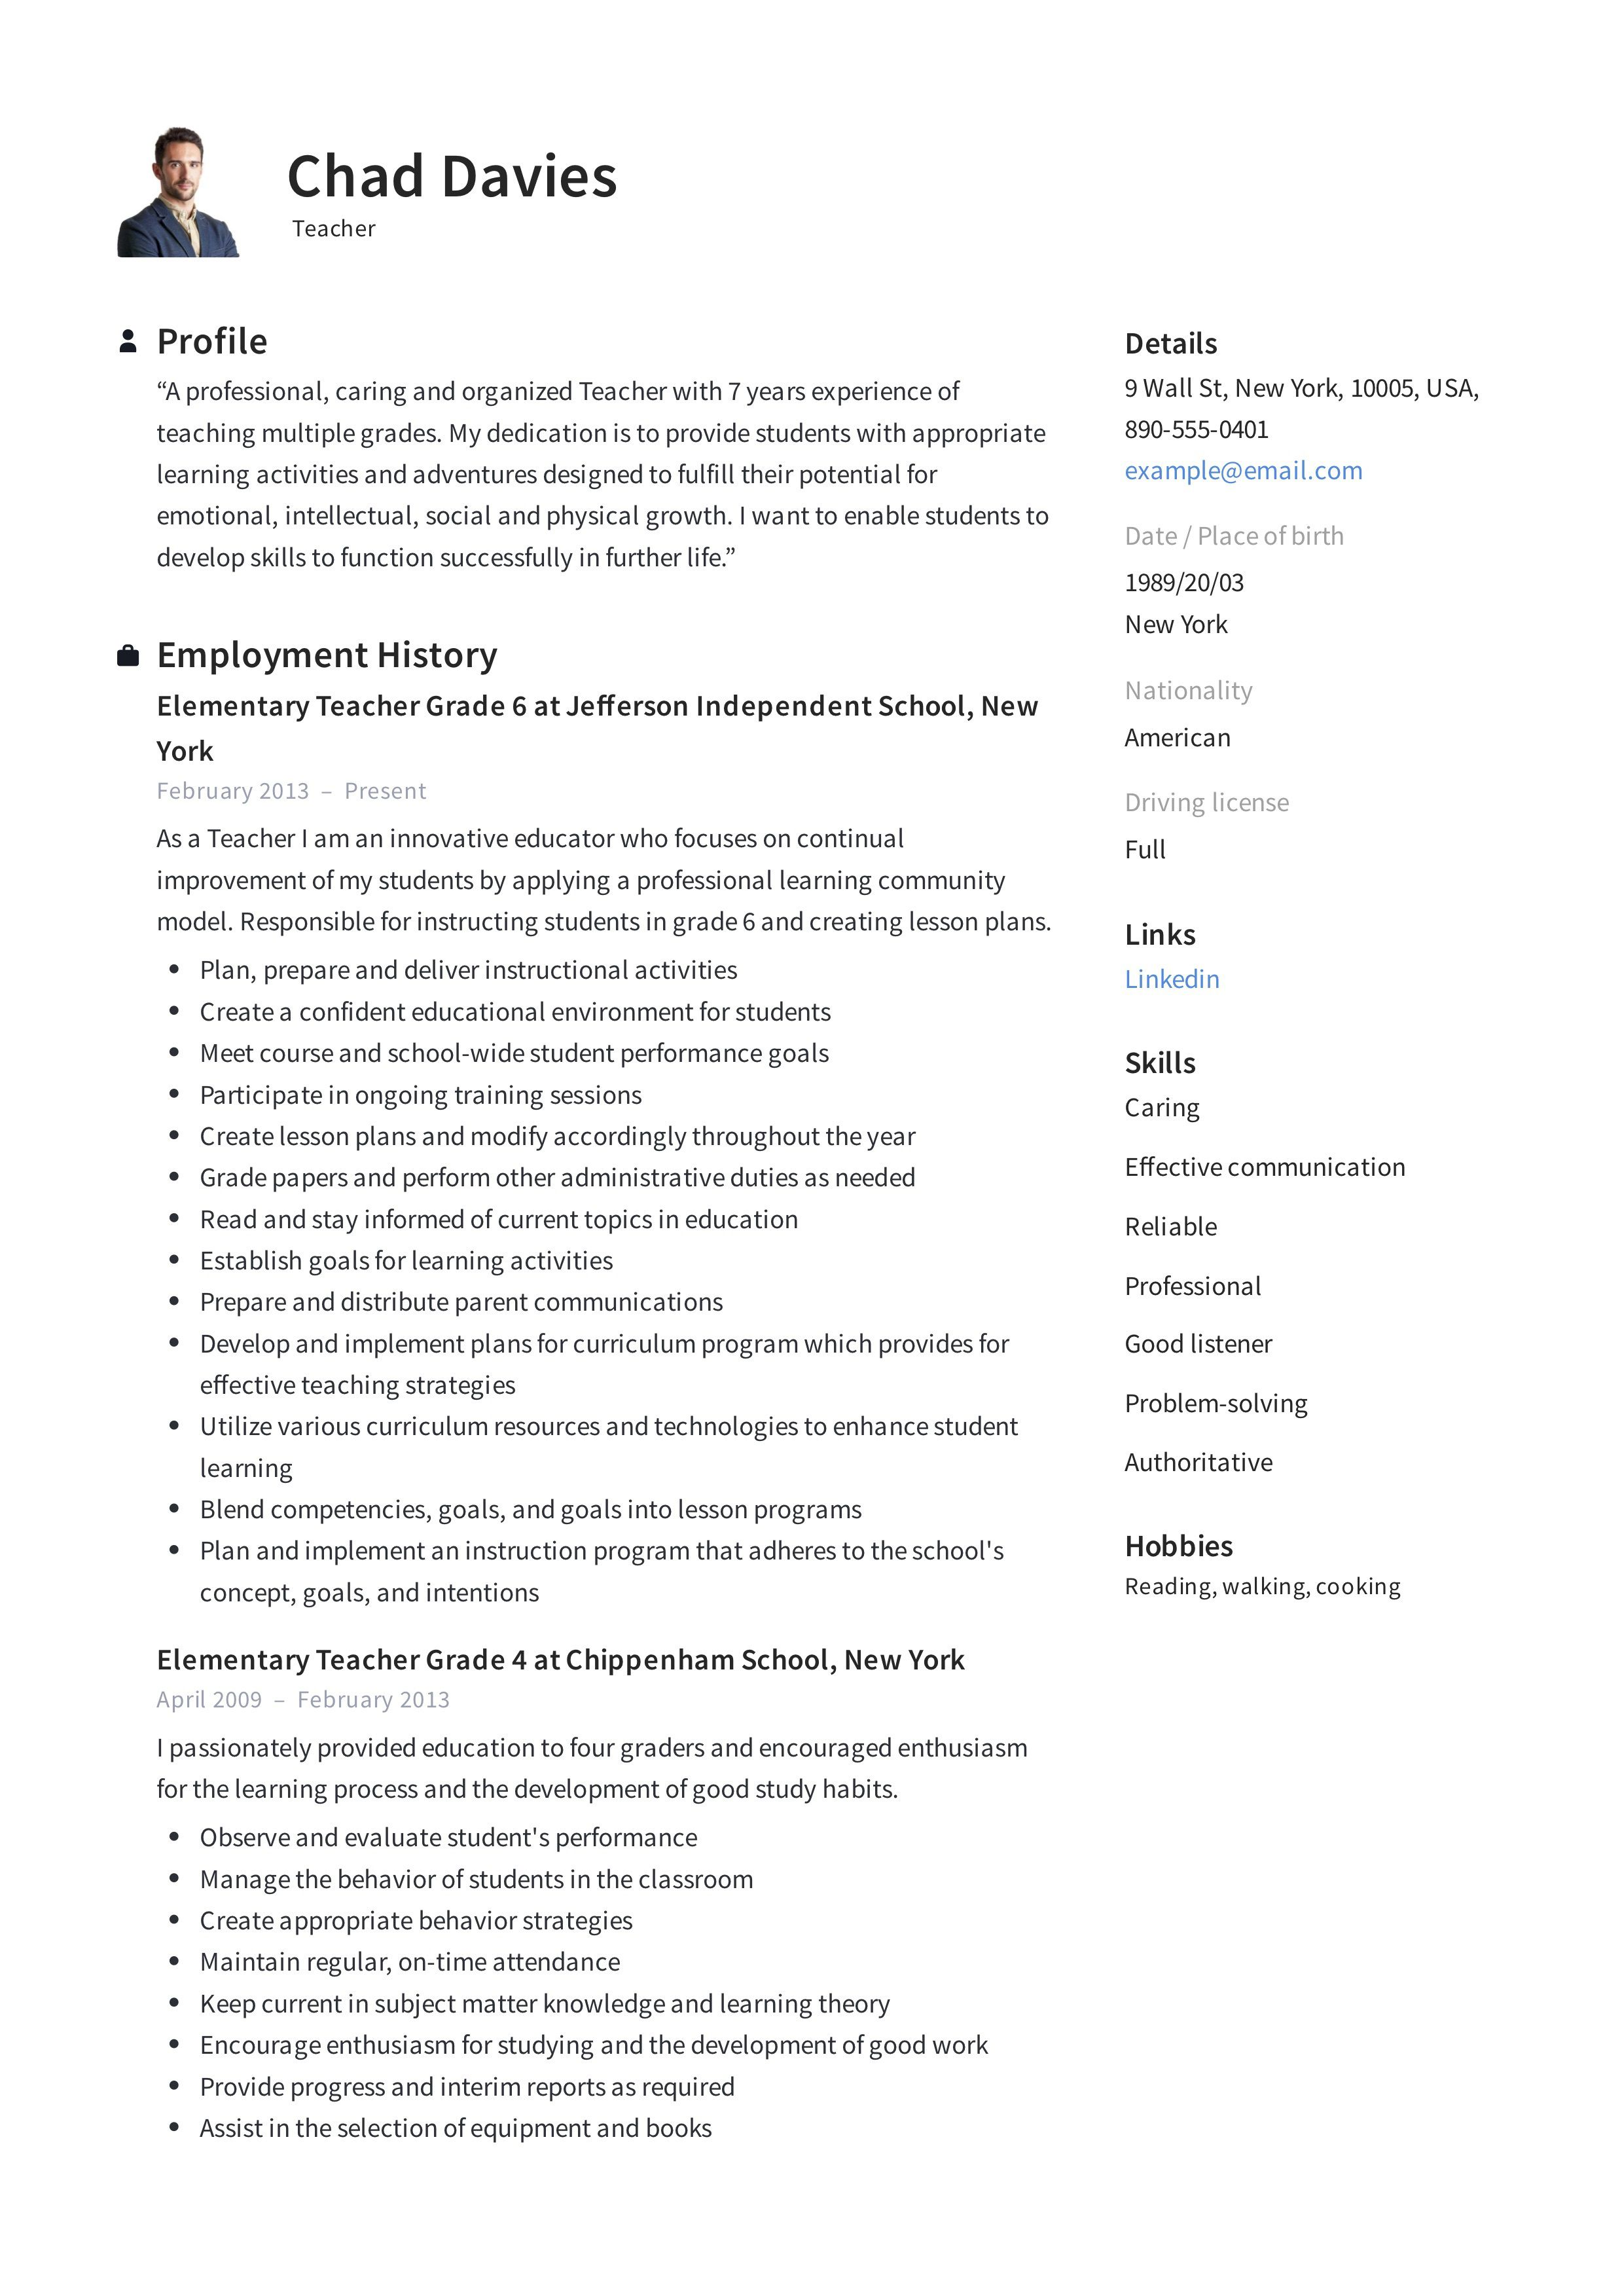 004 Incredible Resume Example For Teaching Job High Def  Jobs Format Sample Curriculum Vitae Profession In IndiaFull